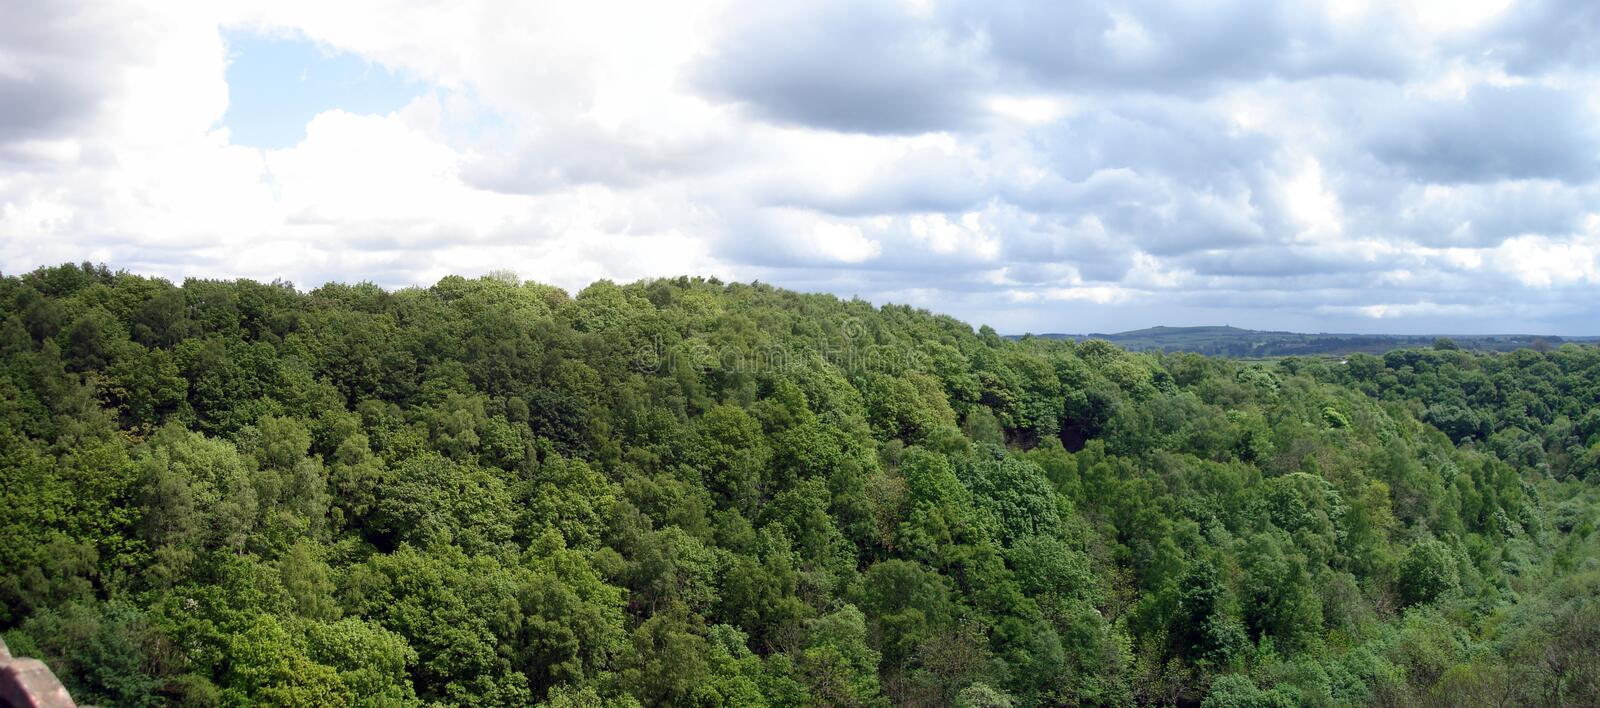 Treetop Landscape. Landscape image of Treetops under a cloudy sky royalty free stock photos